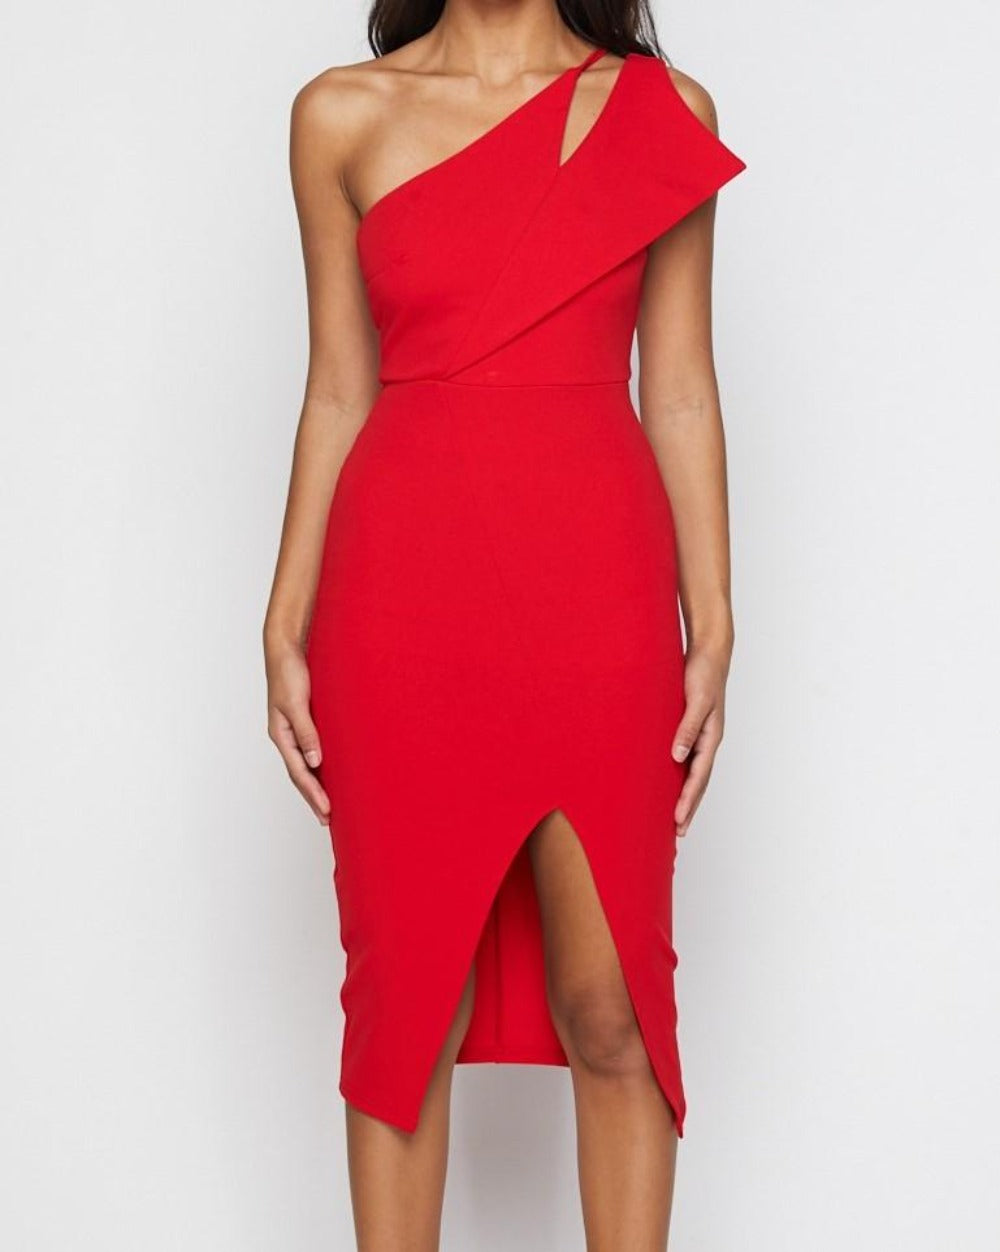 Mi Amore red bodycon one strap midi dress with split to inner thigh - Sahvant